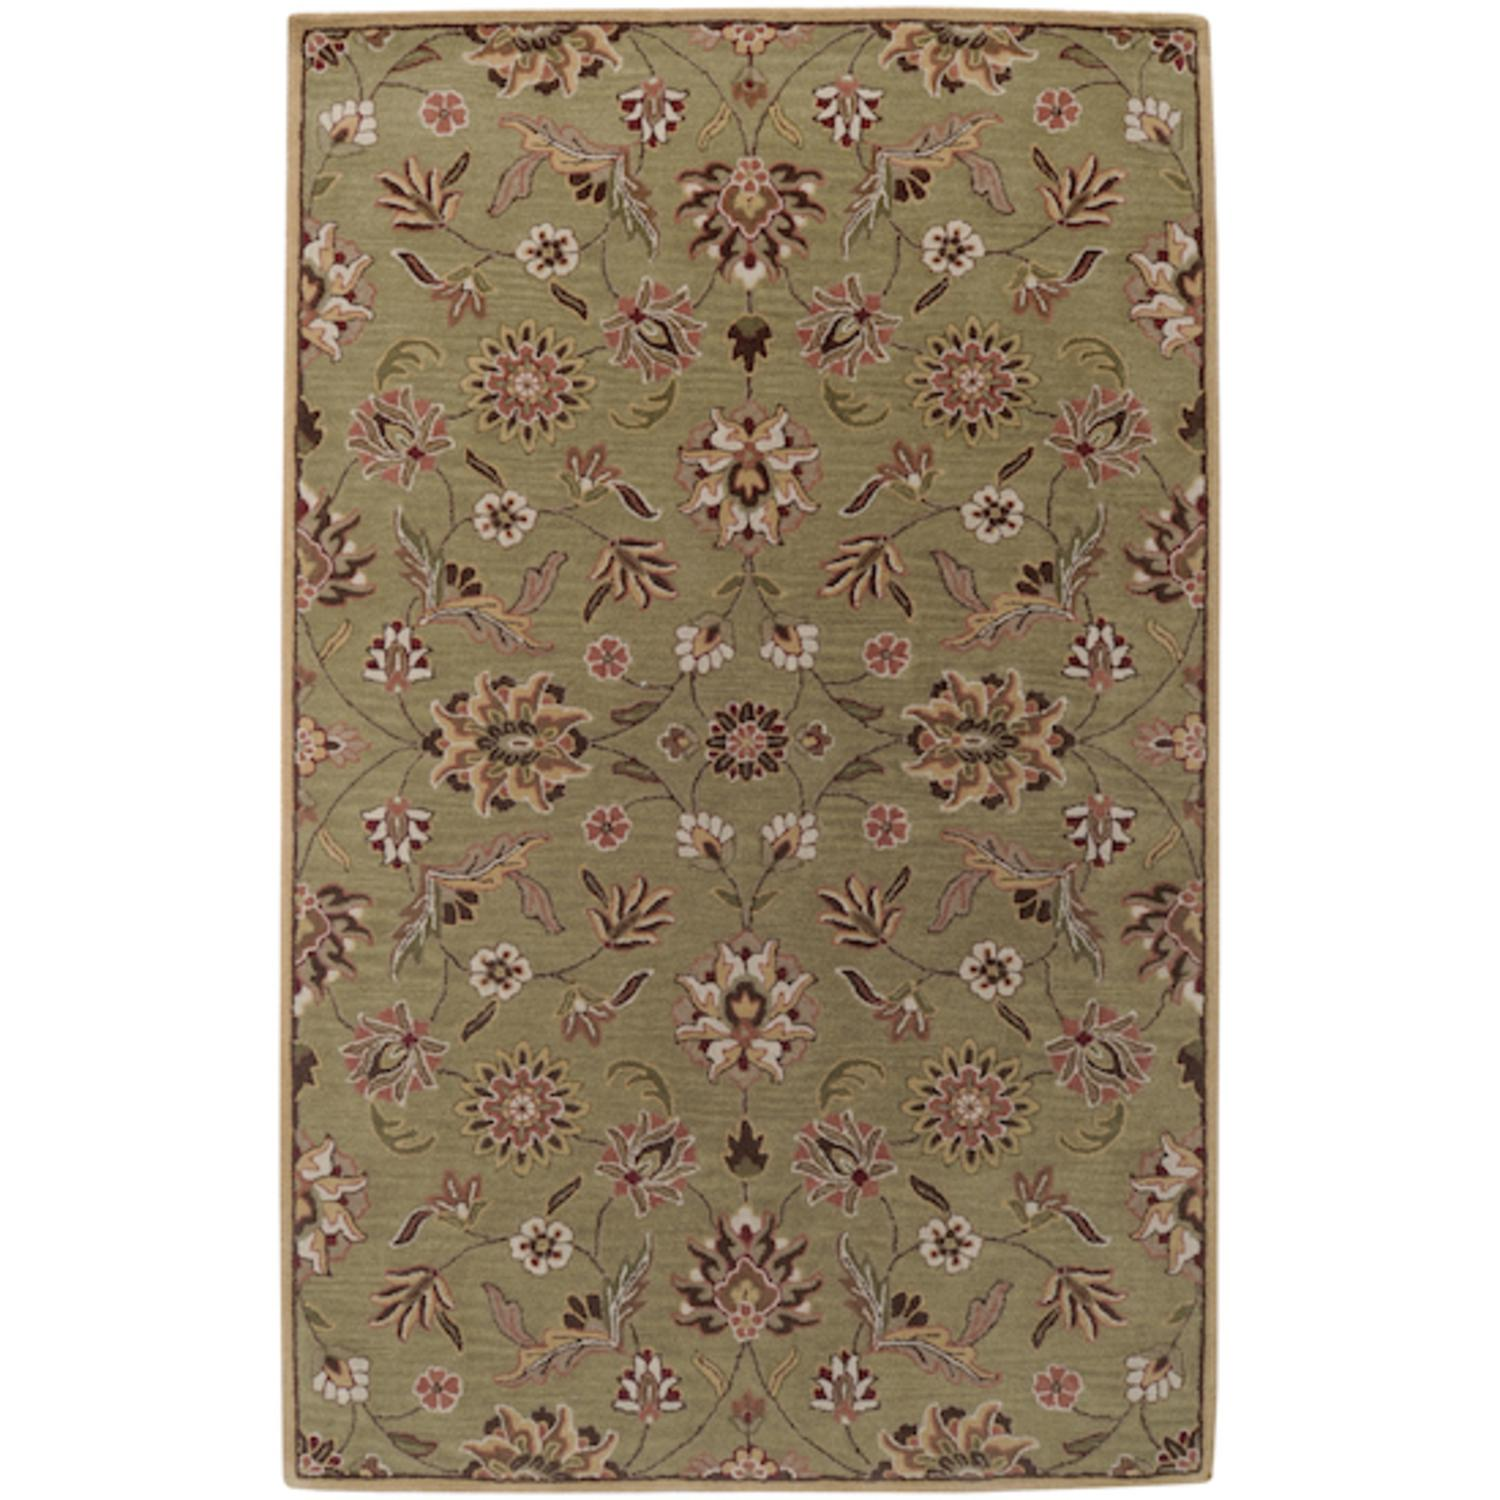 5' x 8' Narcissus Turtle Green and Driftwood Brown Wool Rectangular Area Rug